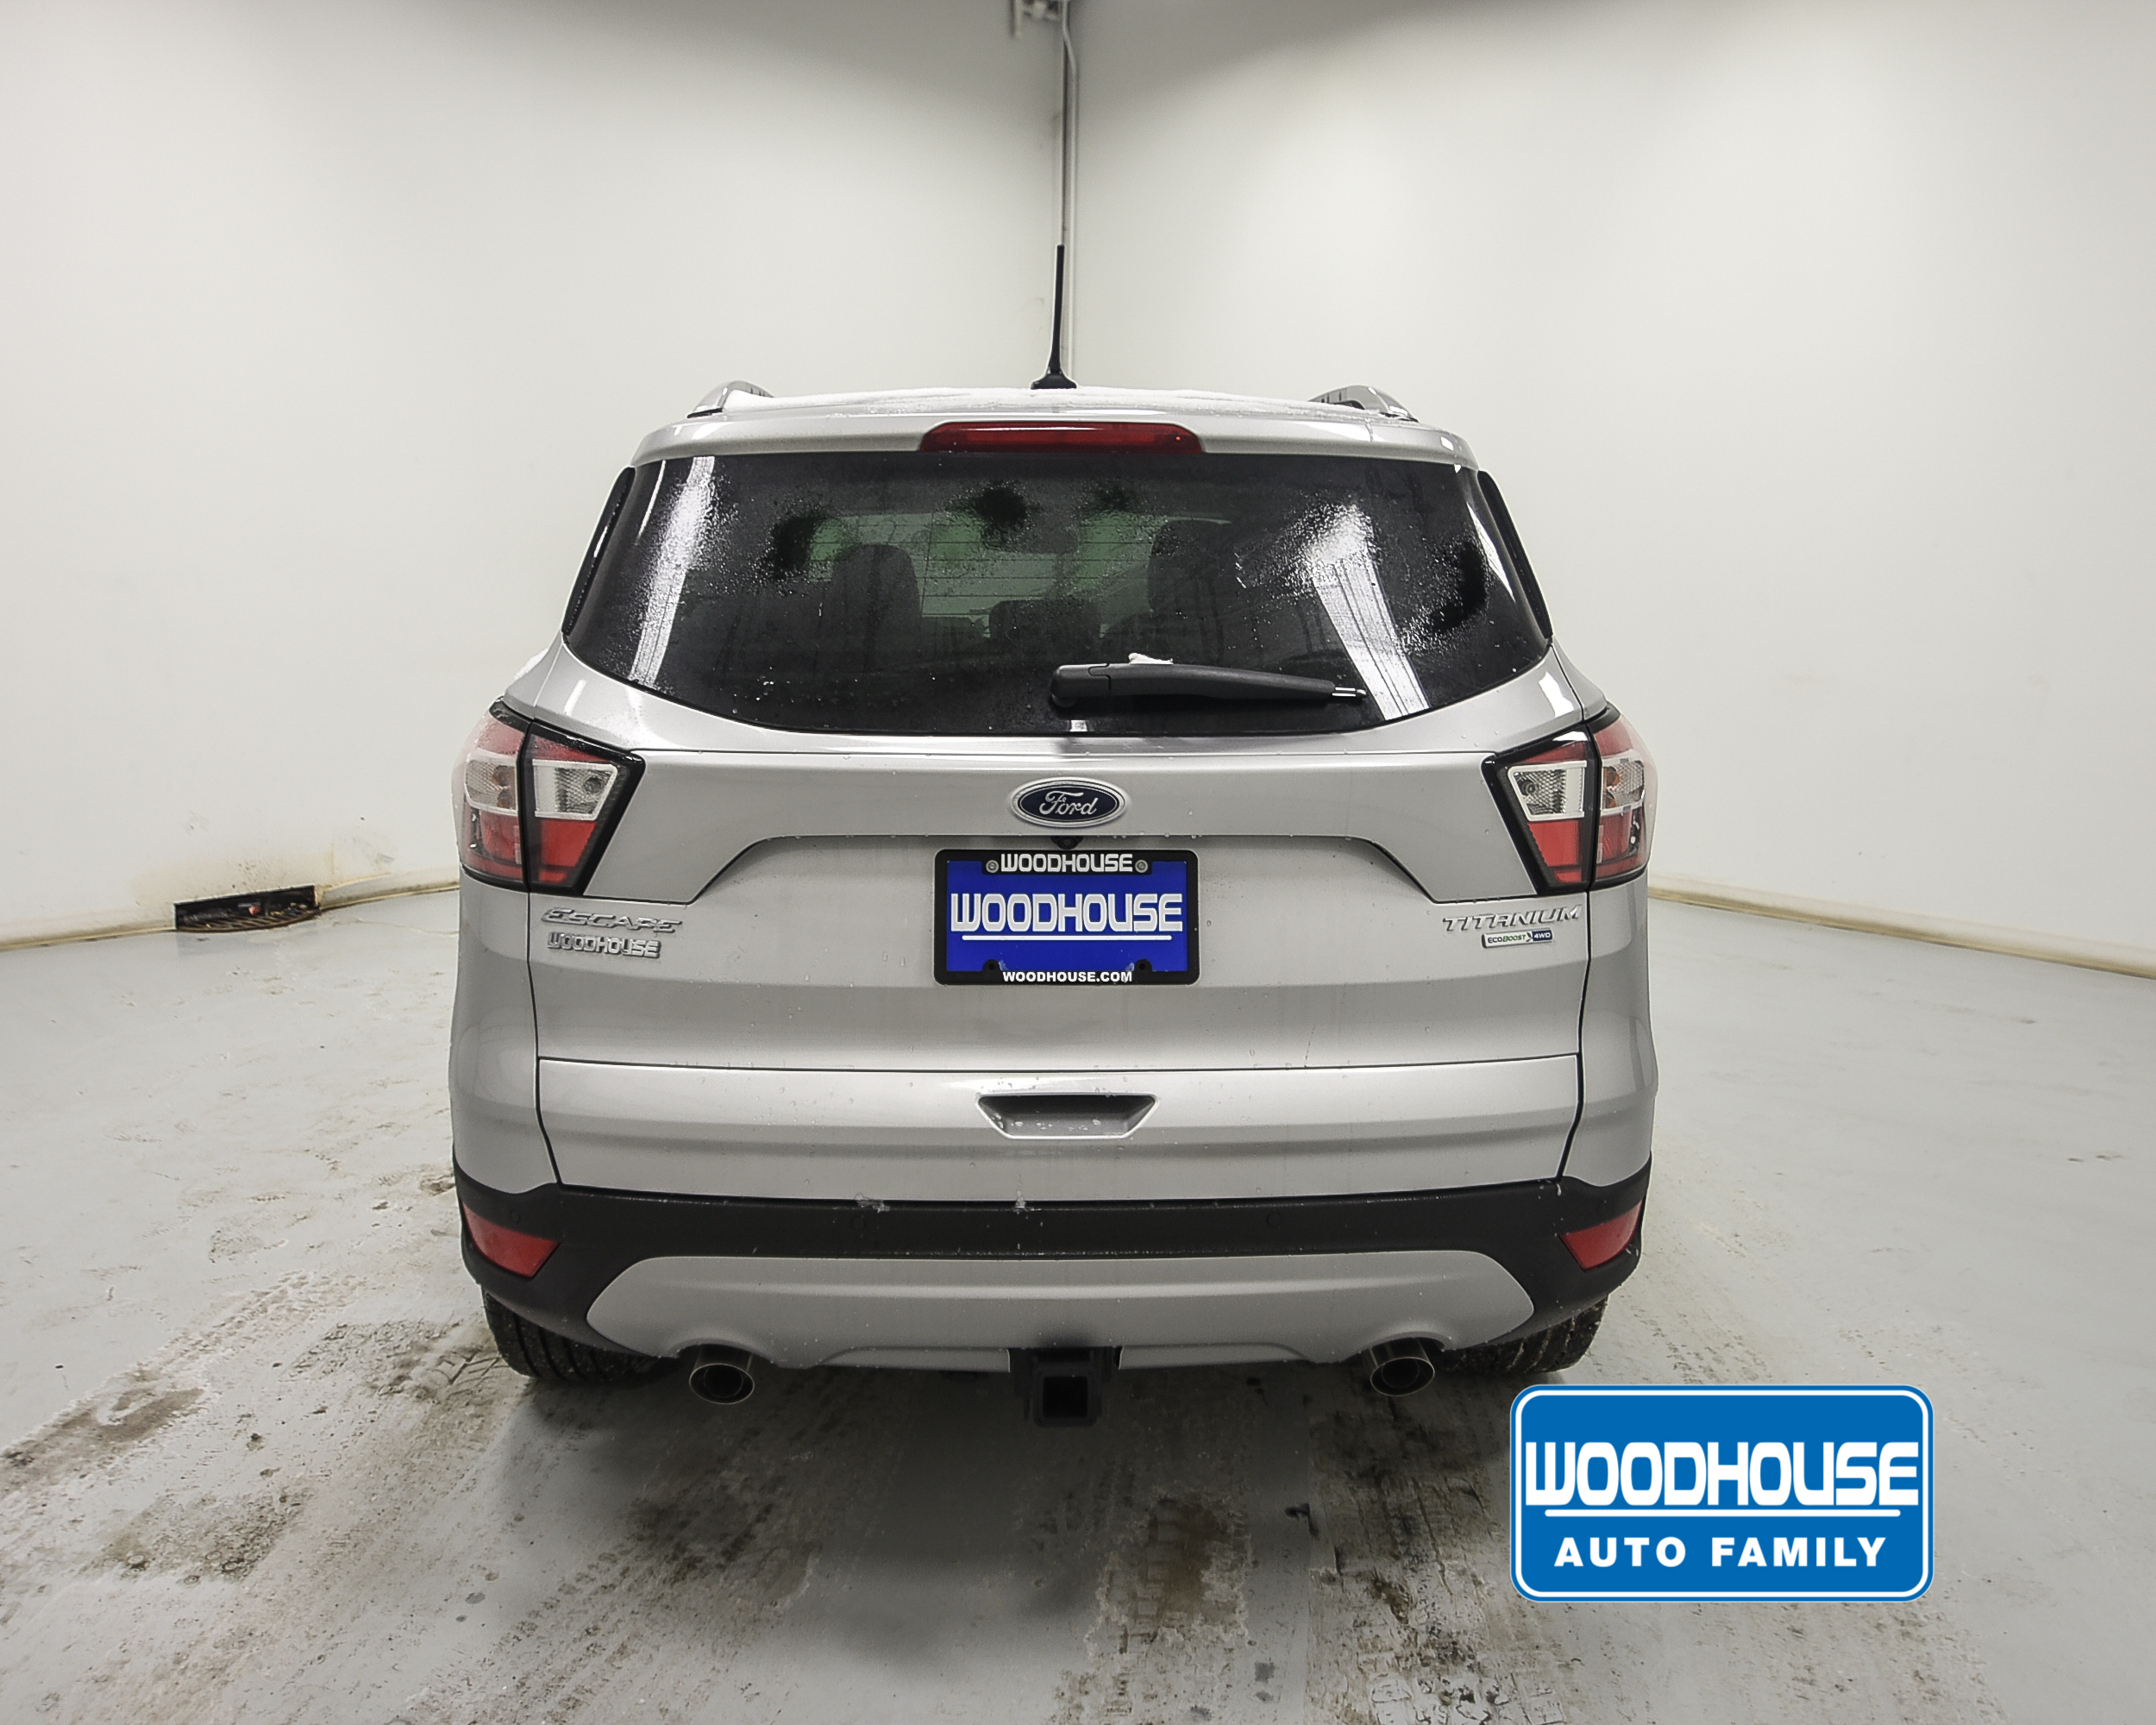 Ford Escape For Sale Woodhouse Auto